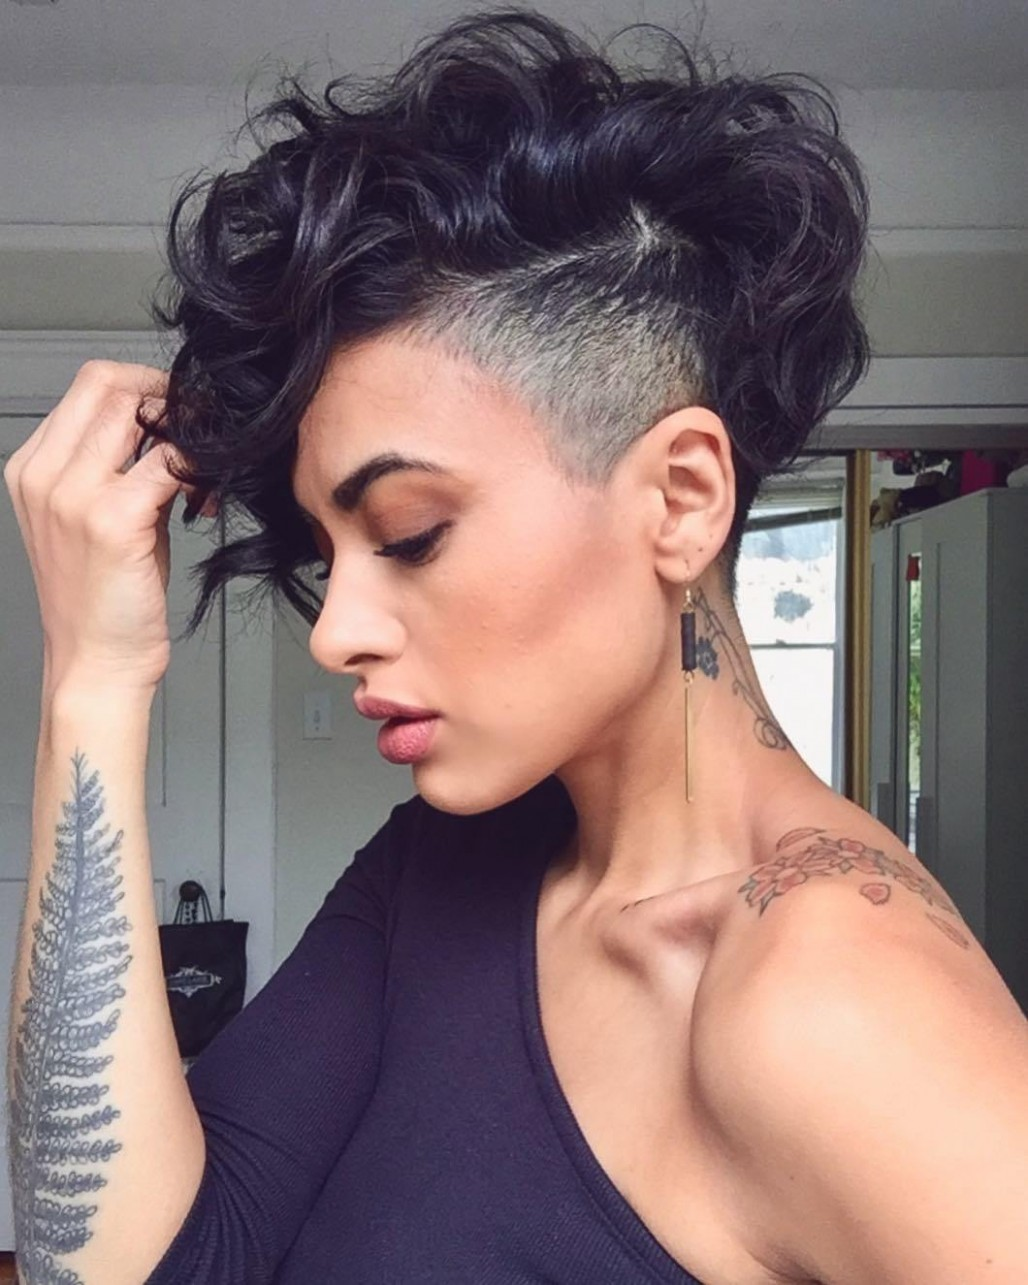 9 Bold Shaved Hairstyles For Women Shaved Hair Designs Shaved Sides Long Top Female